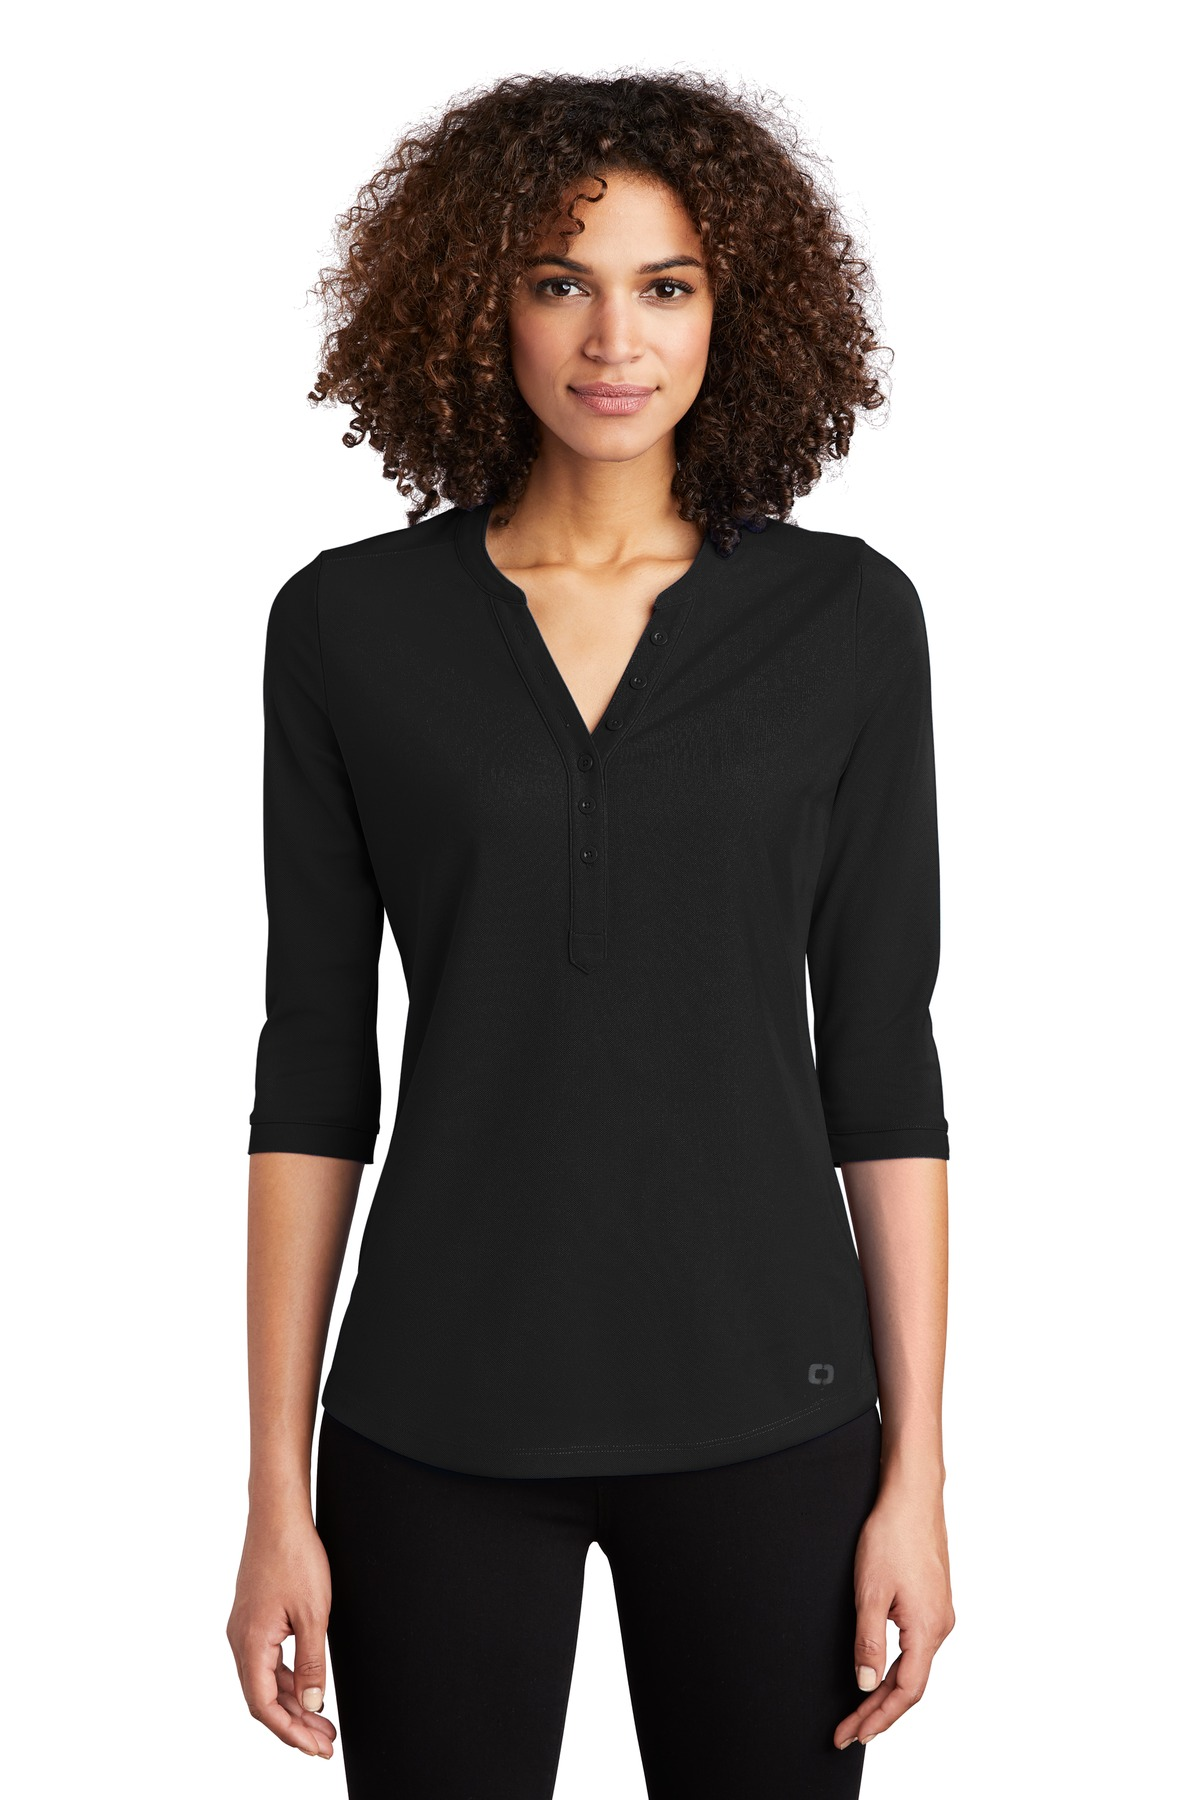 OGIO  ®  Ladies Jewel Henley LOG104 - Blacktop